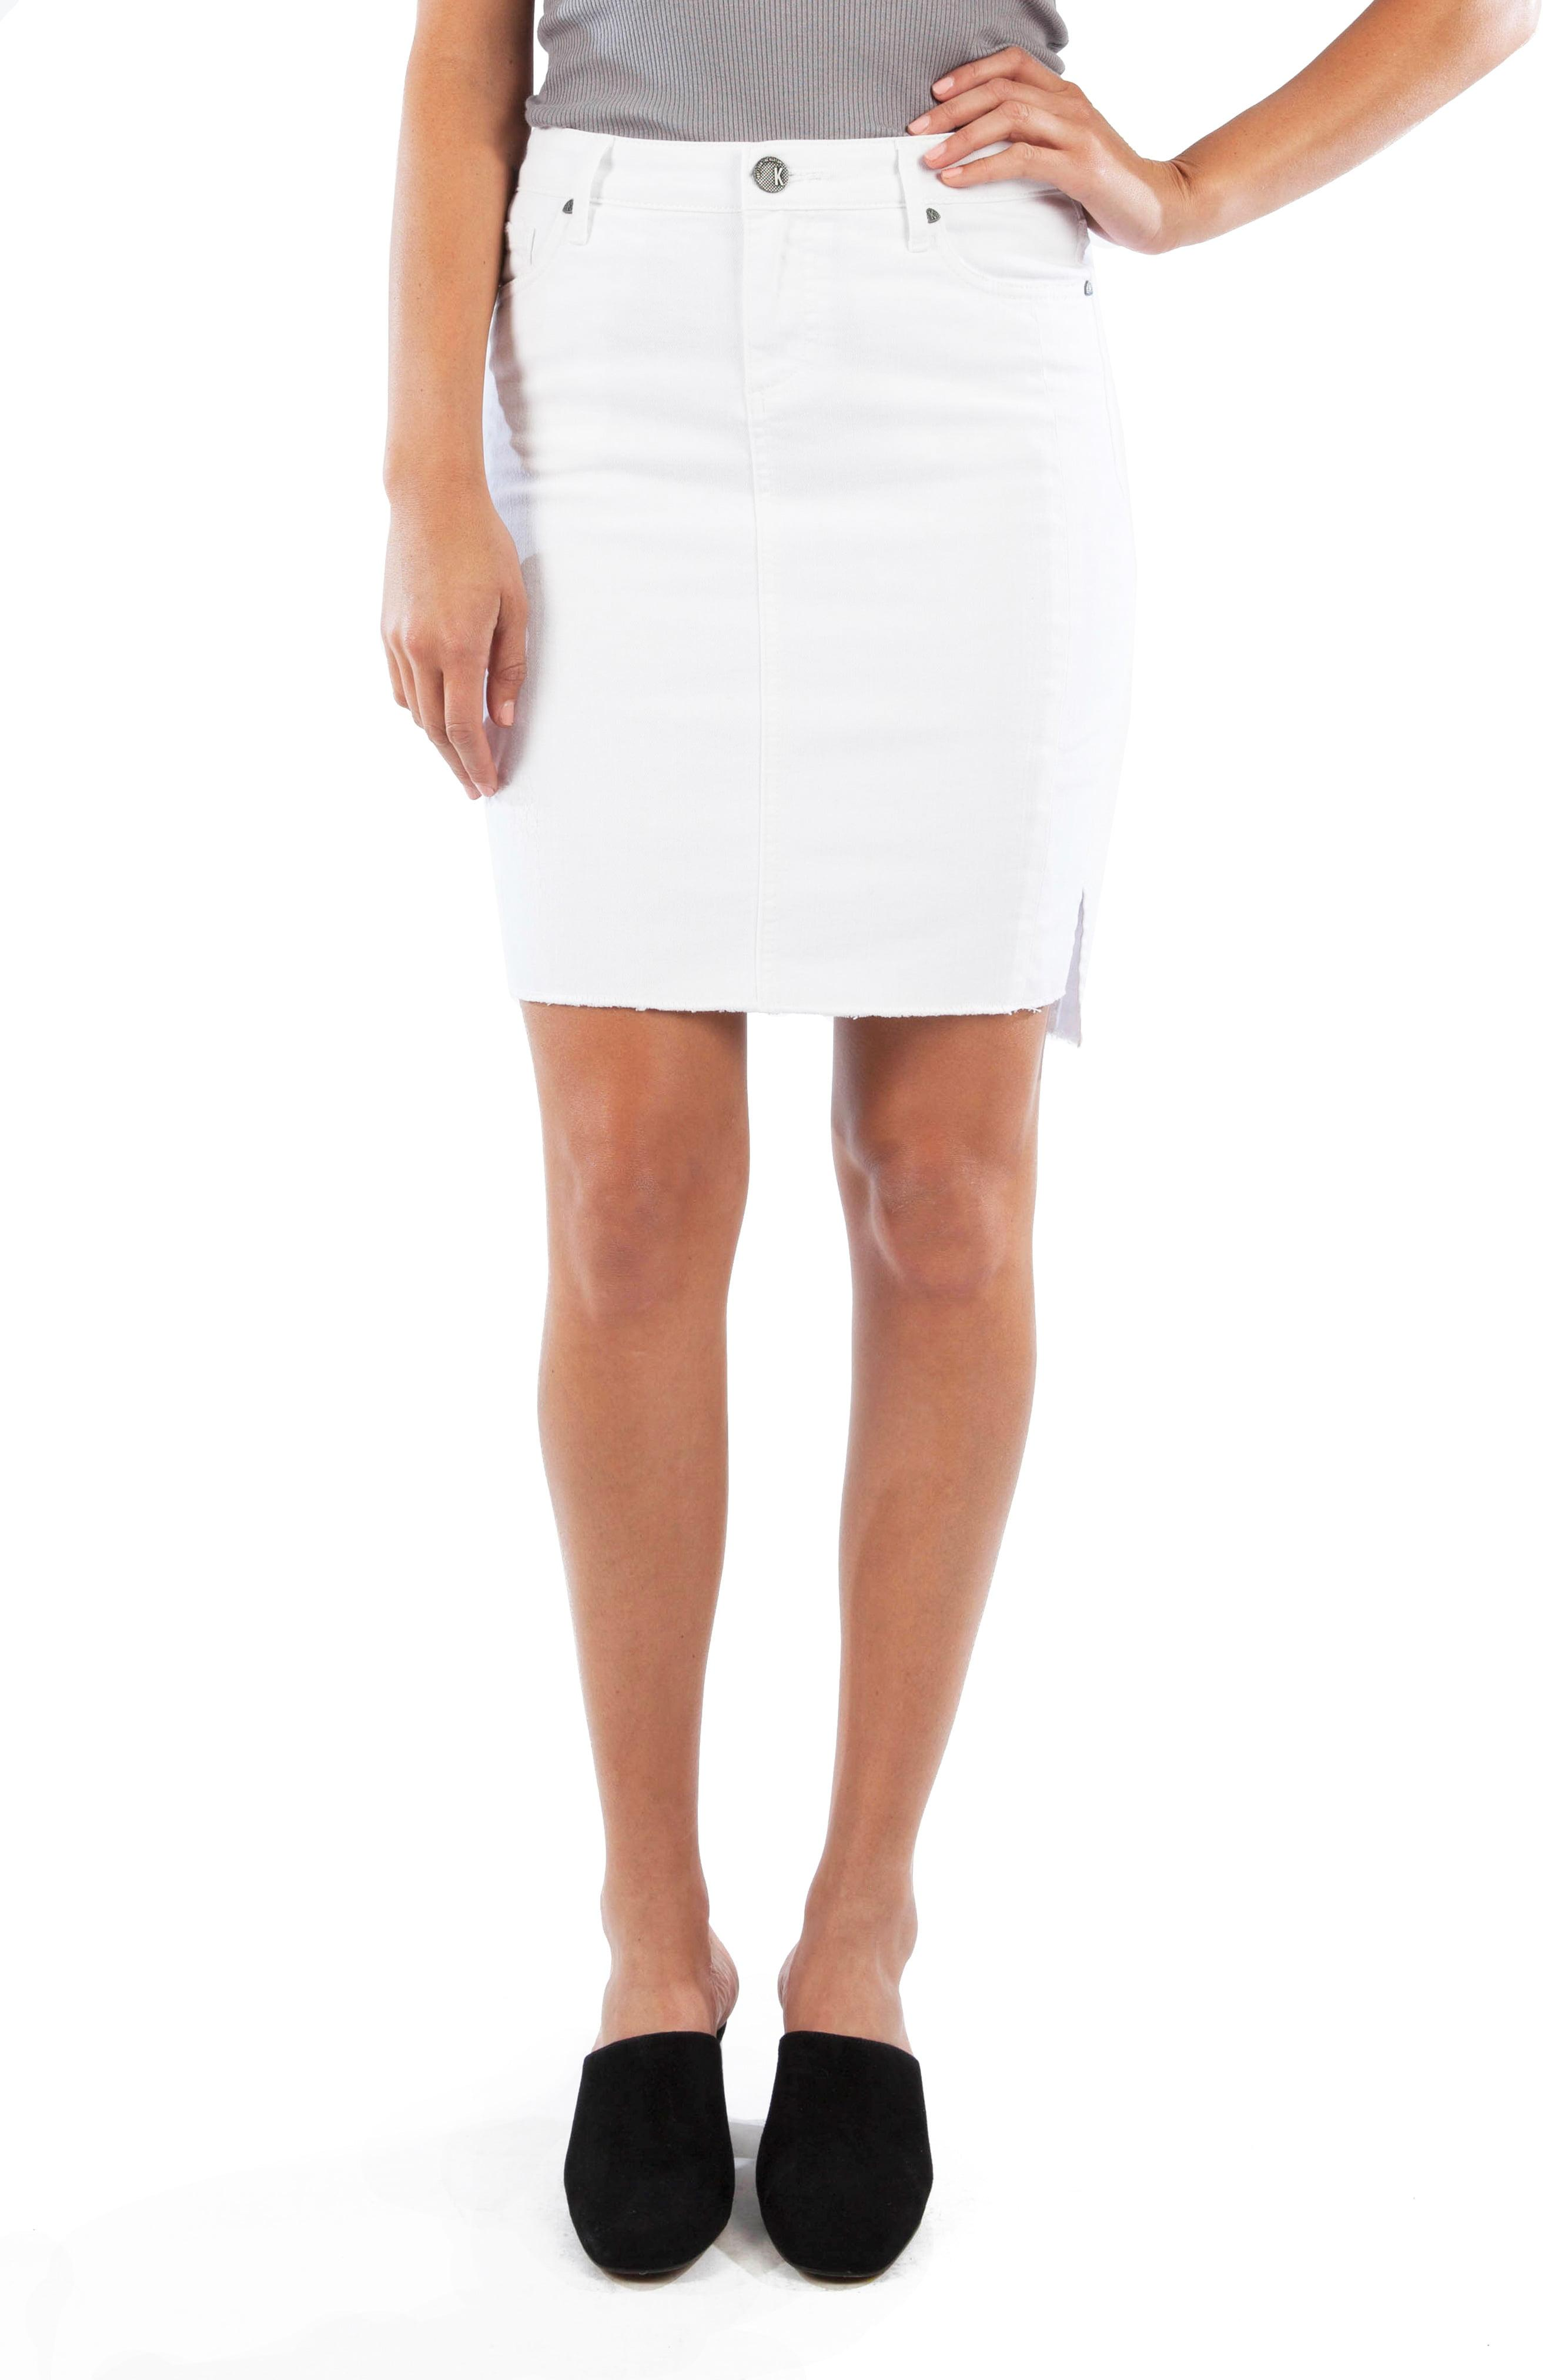 aa59d7e0a2 Kut From The Kloth. Women's White Connie Step Raw Hem Stretch Cotton Skirt